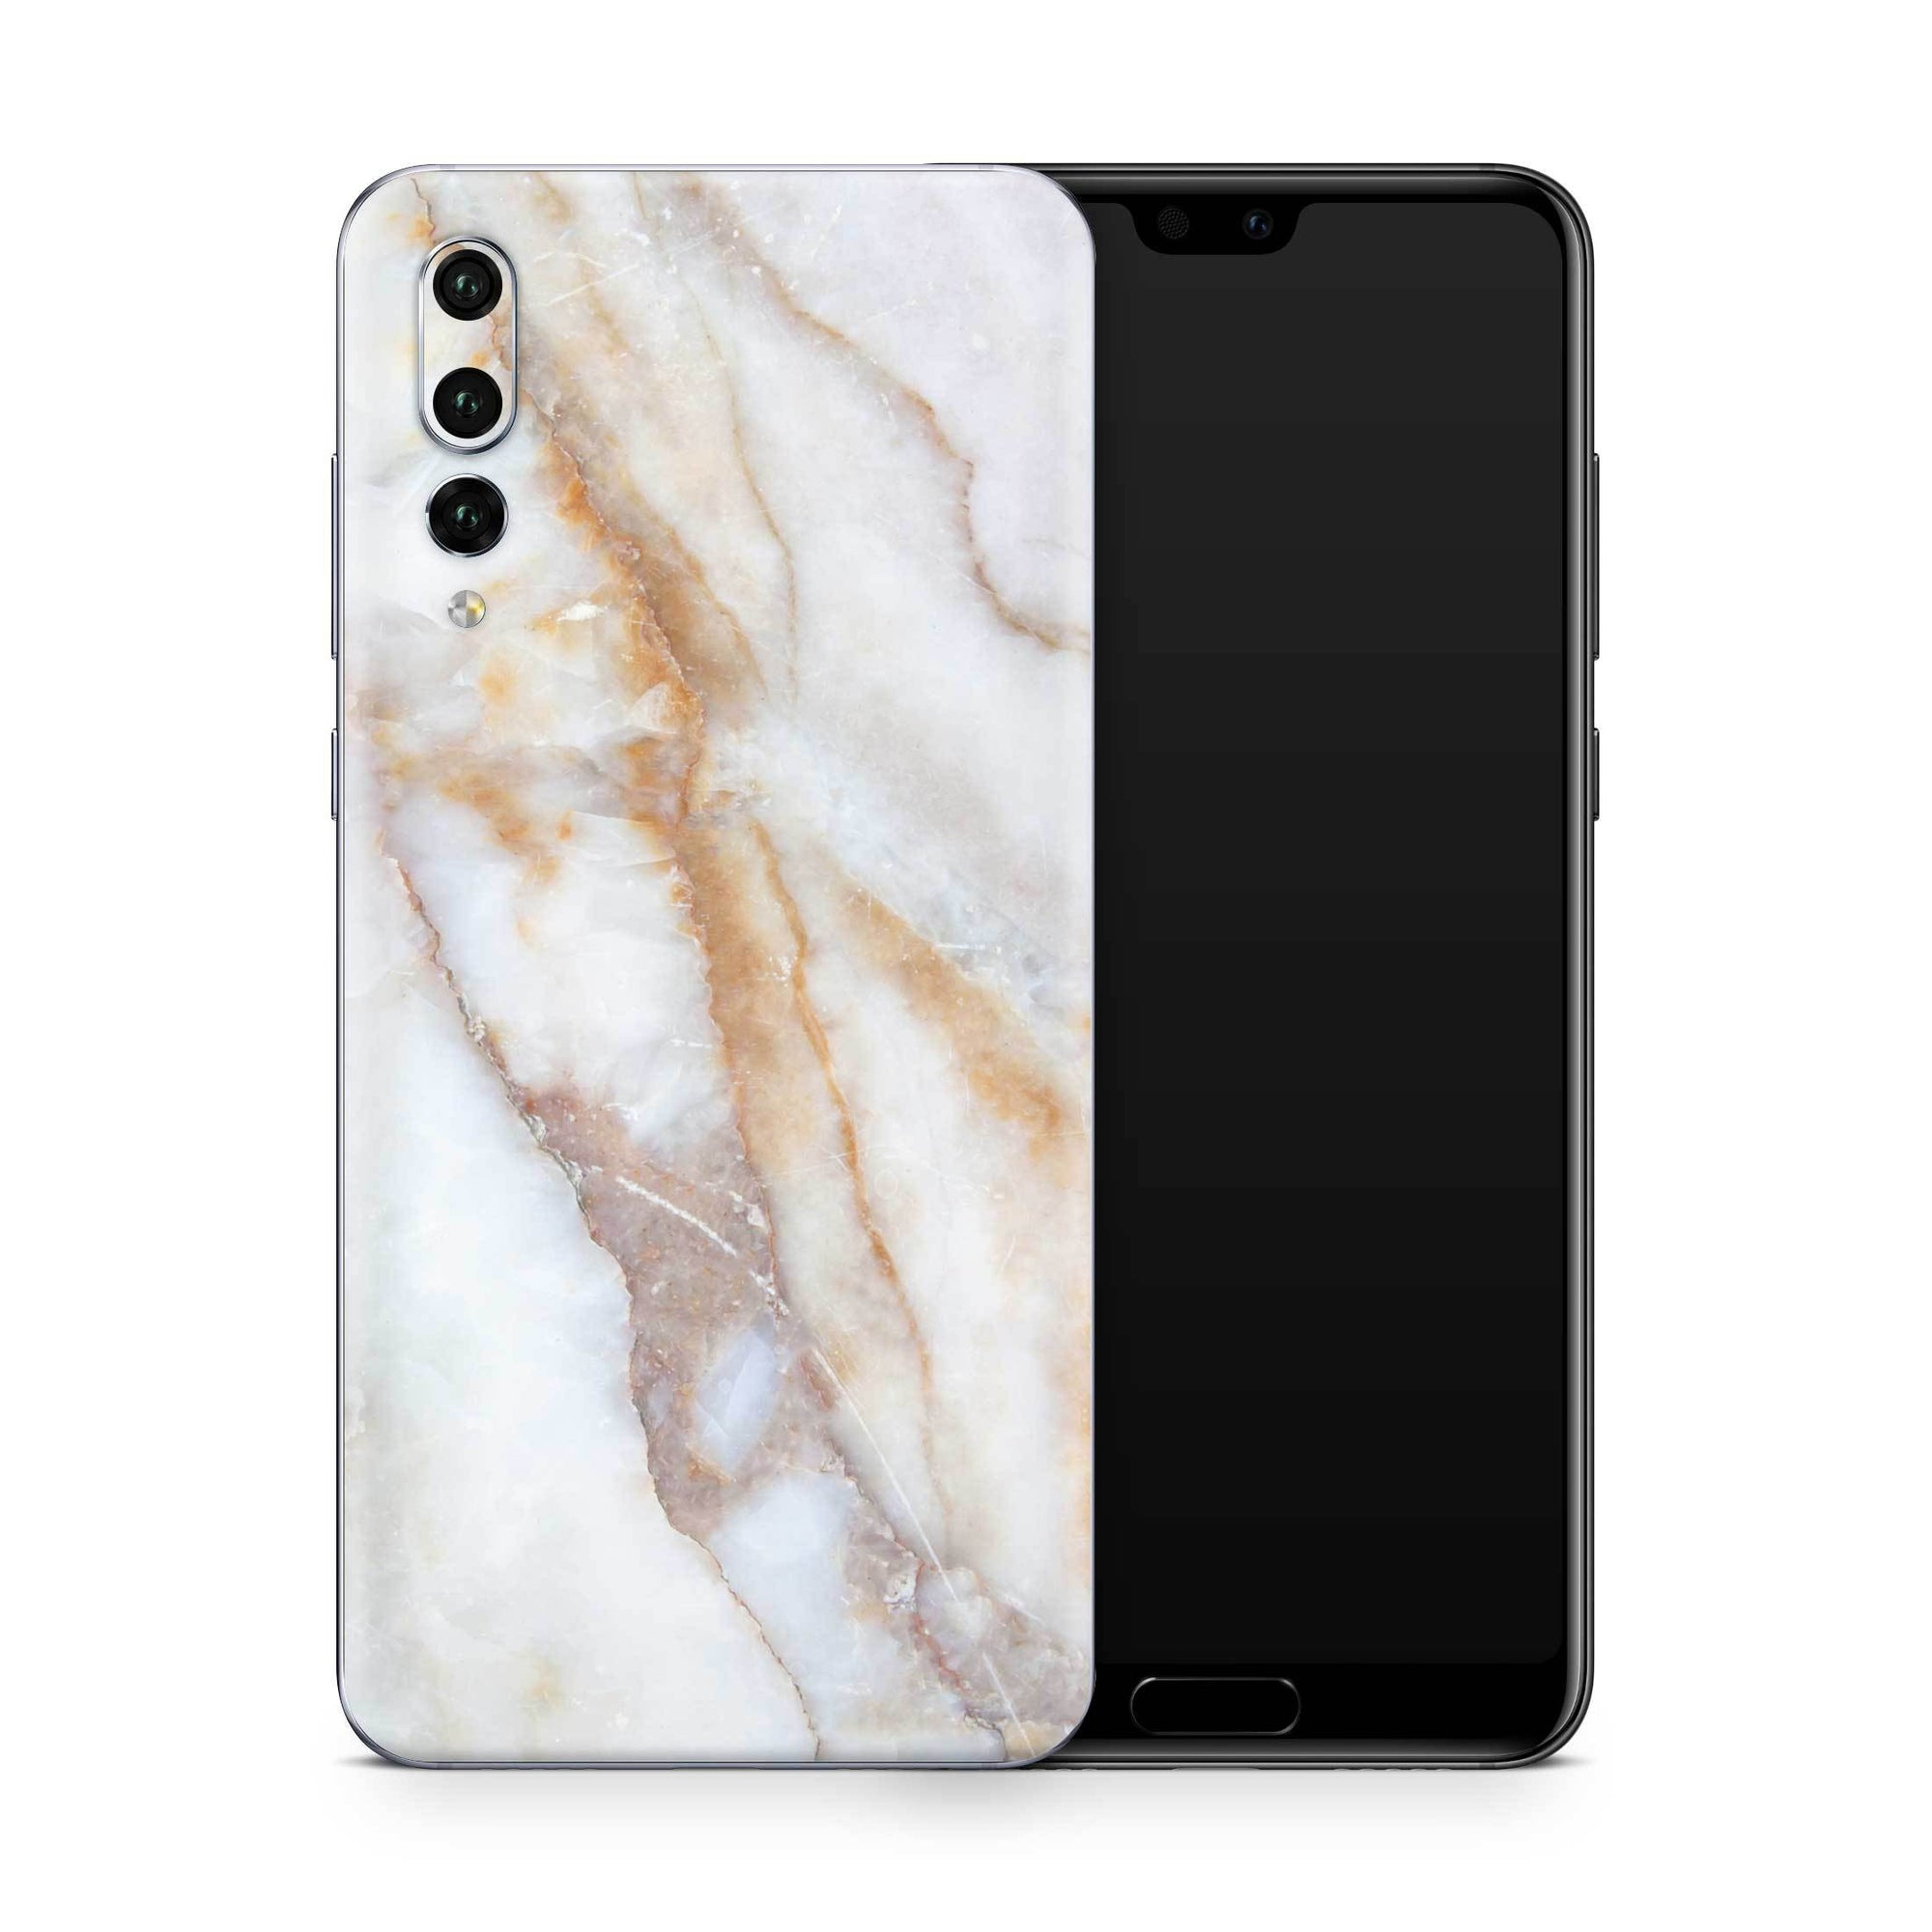 Vanilla Marble Skin Huawei P20 Pro and P30 Pro